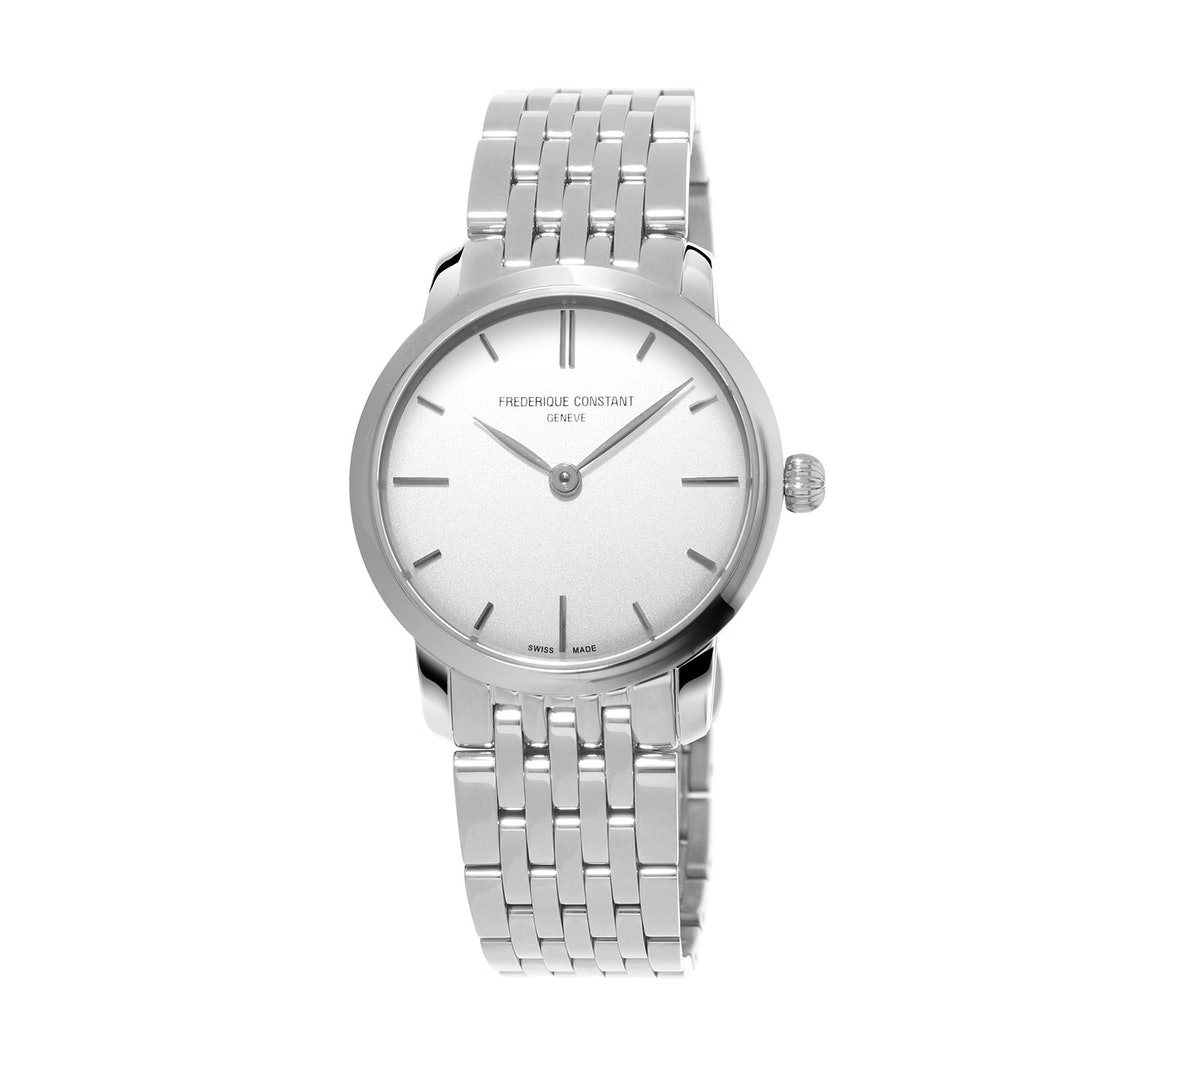 Frederique Constant stainless steel watch